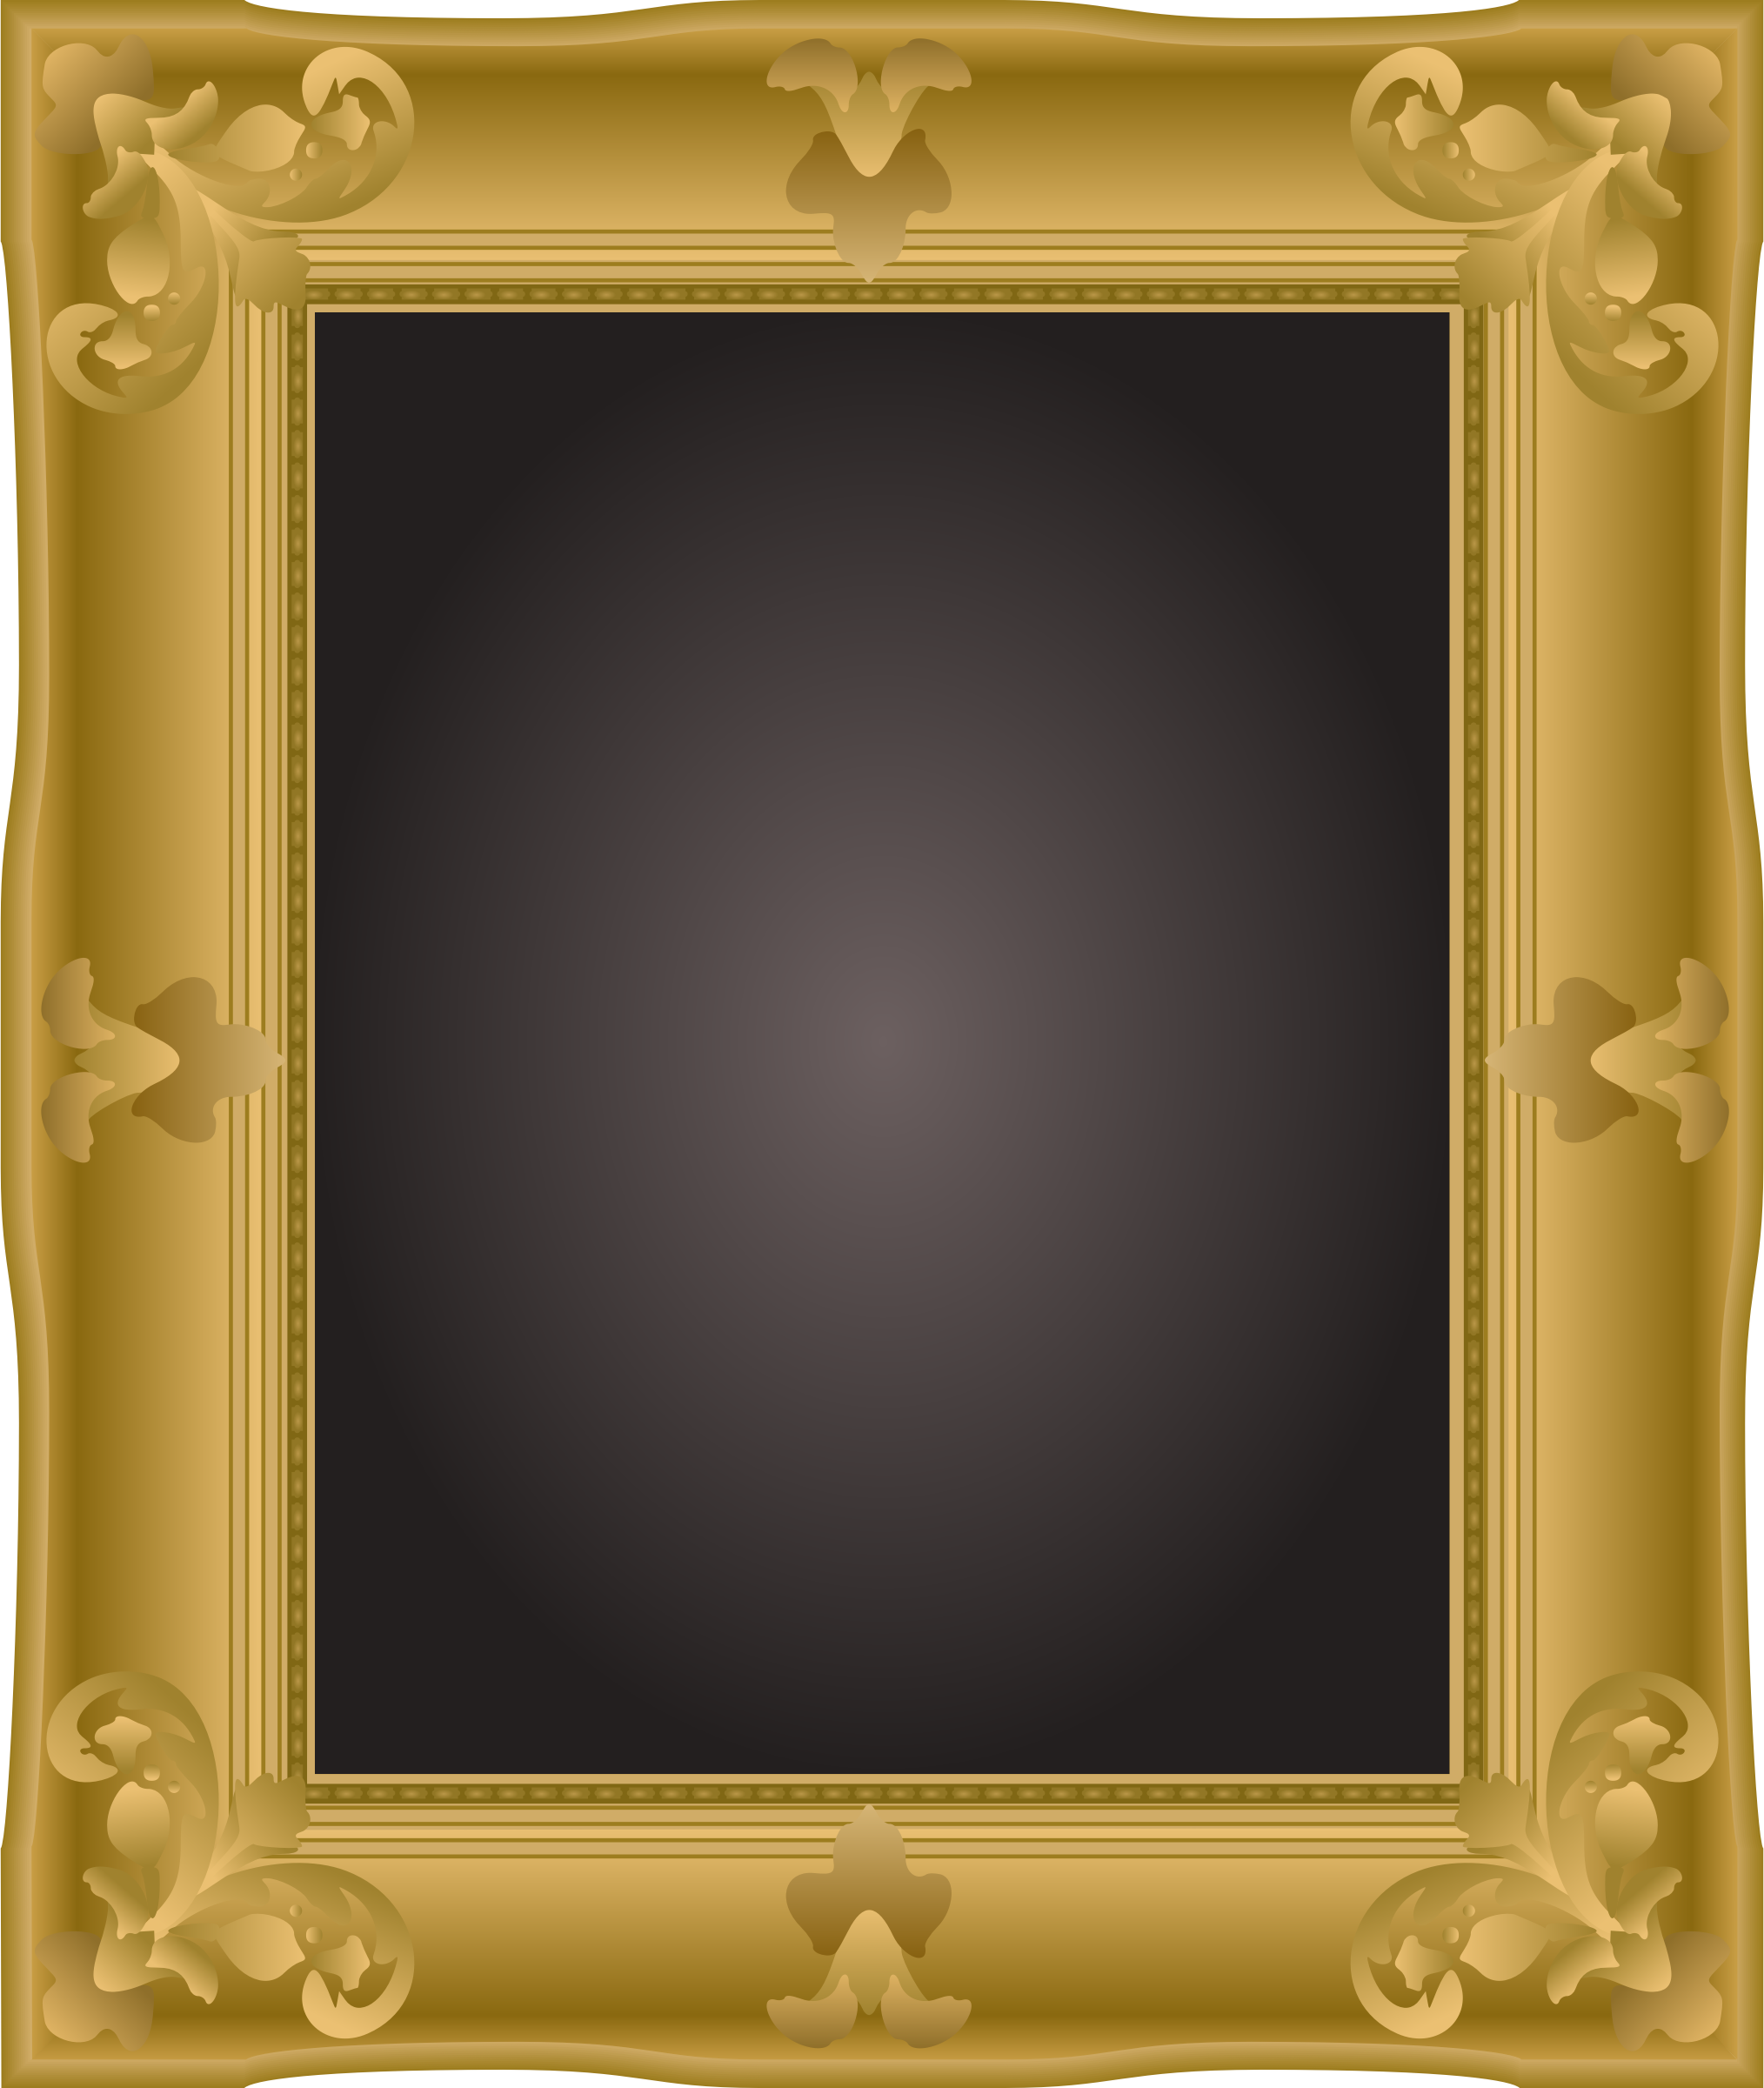 bnsonger47's ornate picture frame redrawn by Firkin